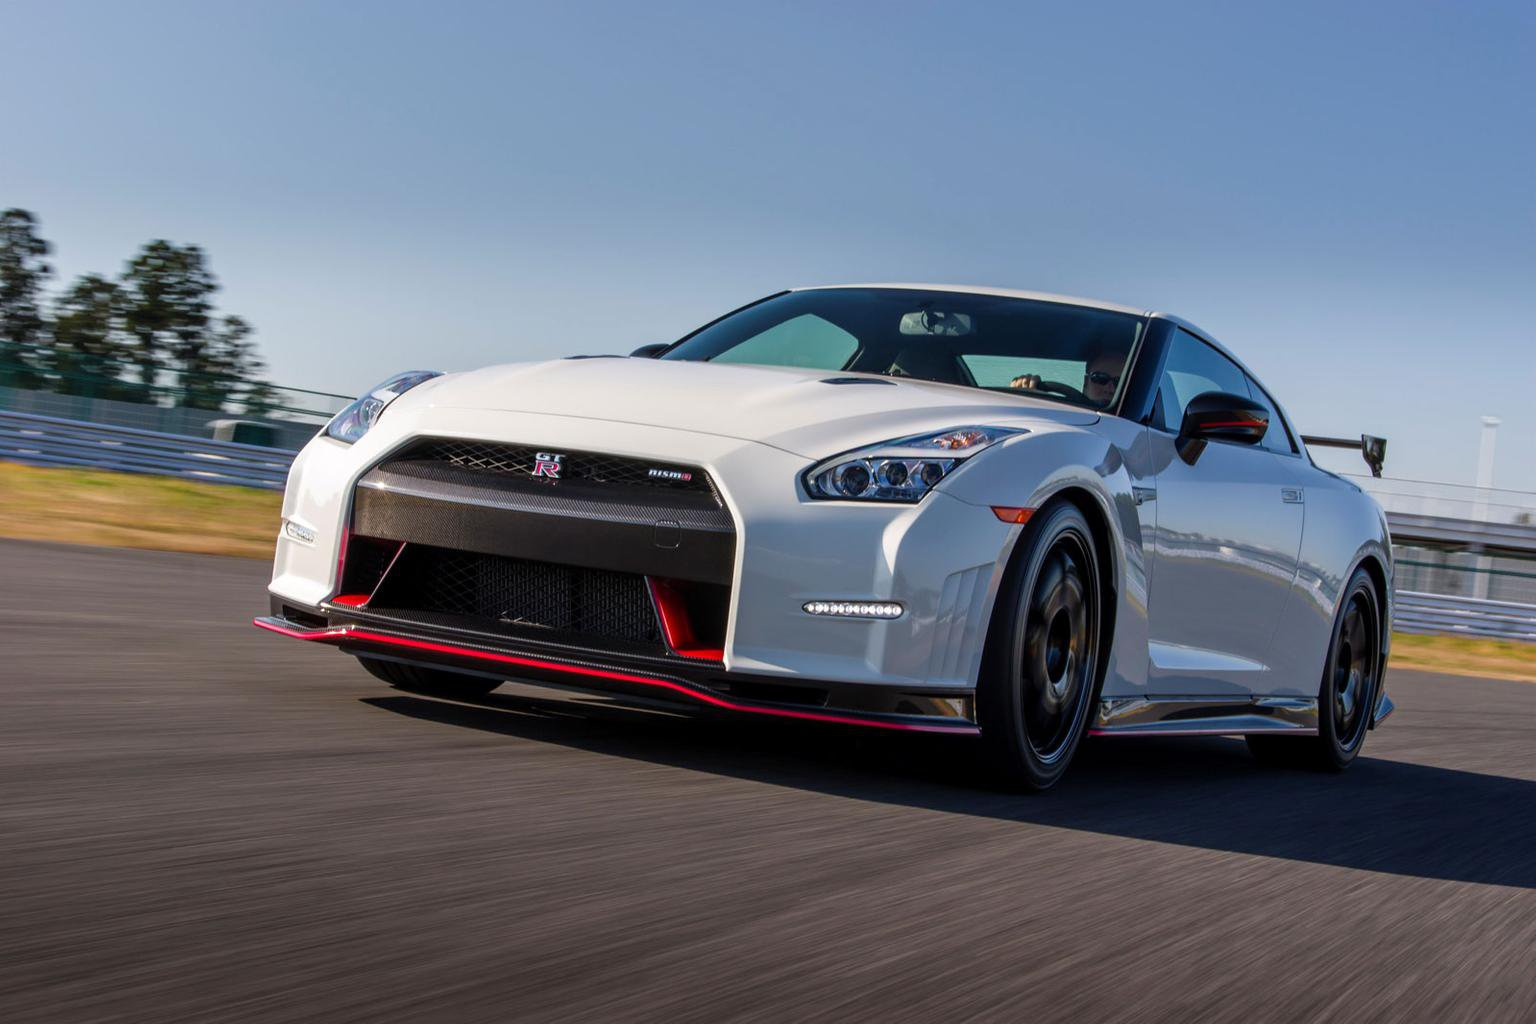 2014 Nissan GT-R Nismo review